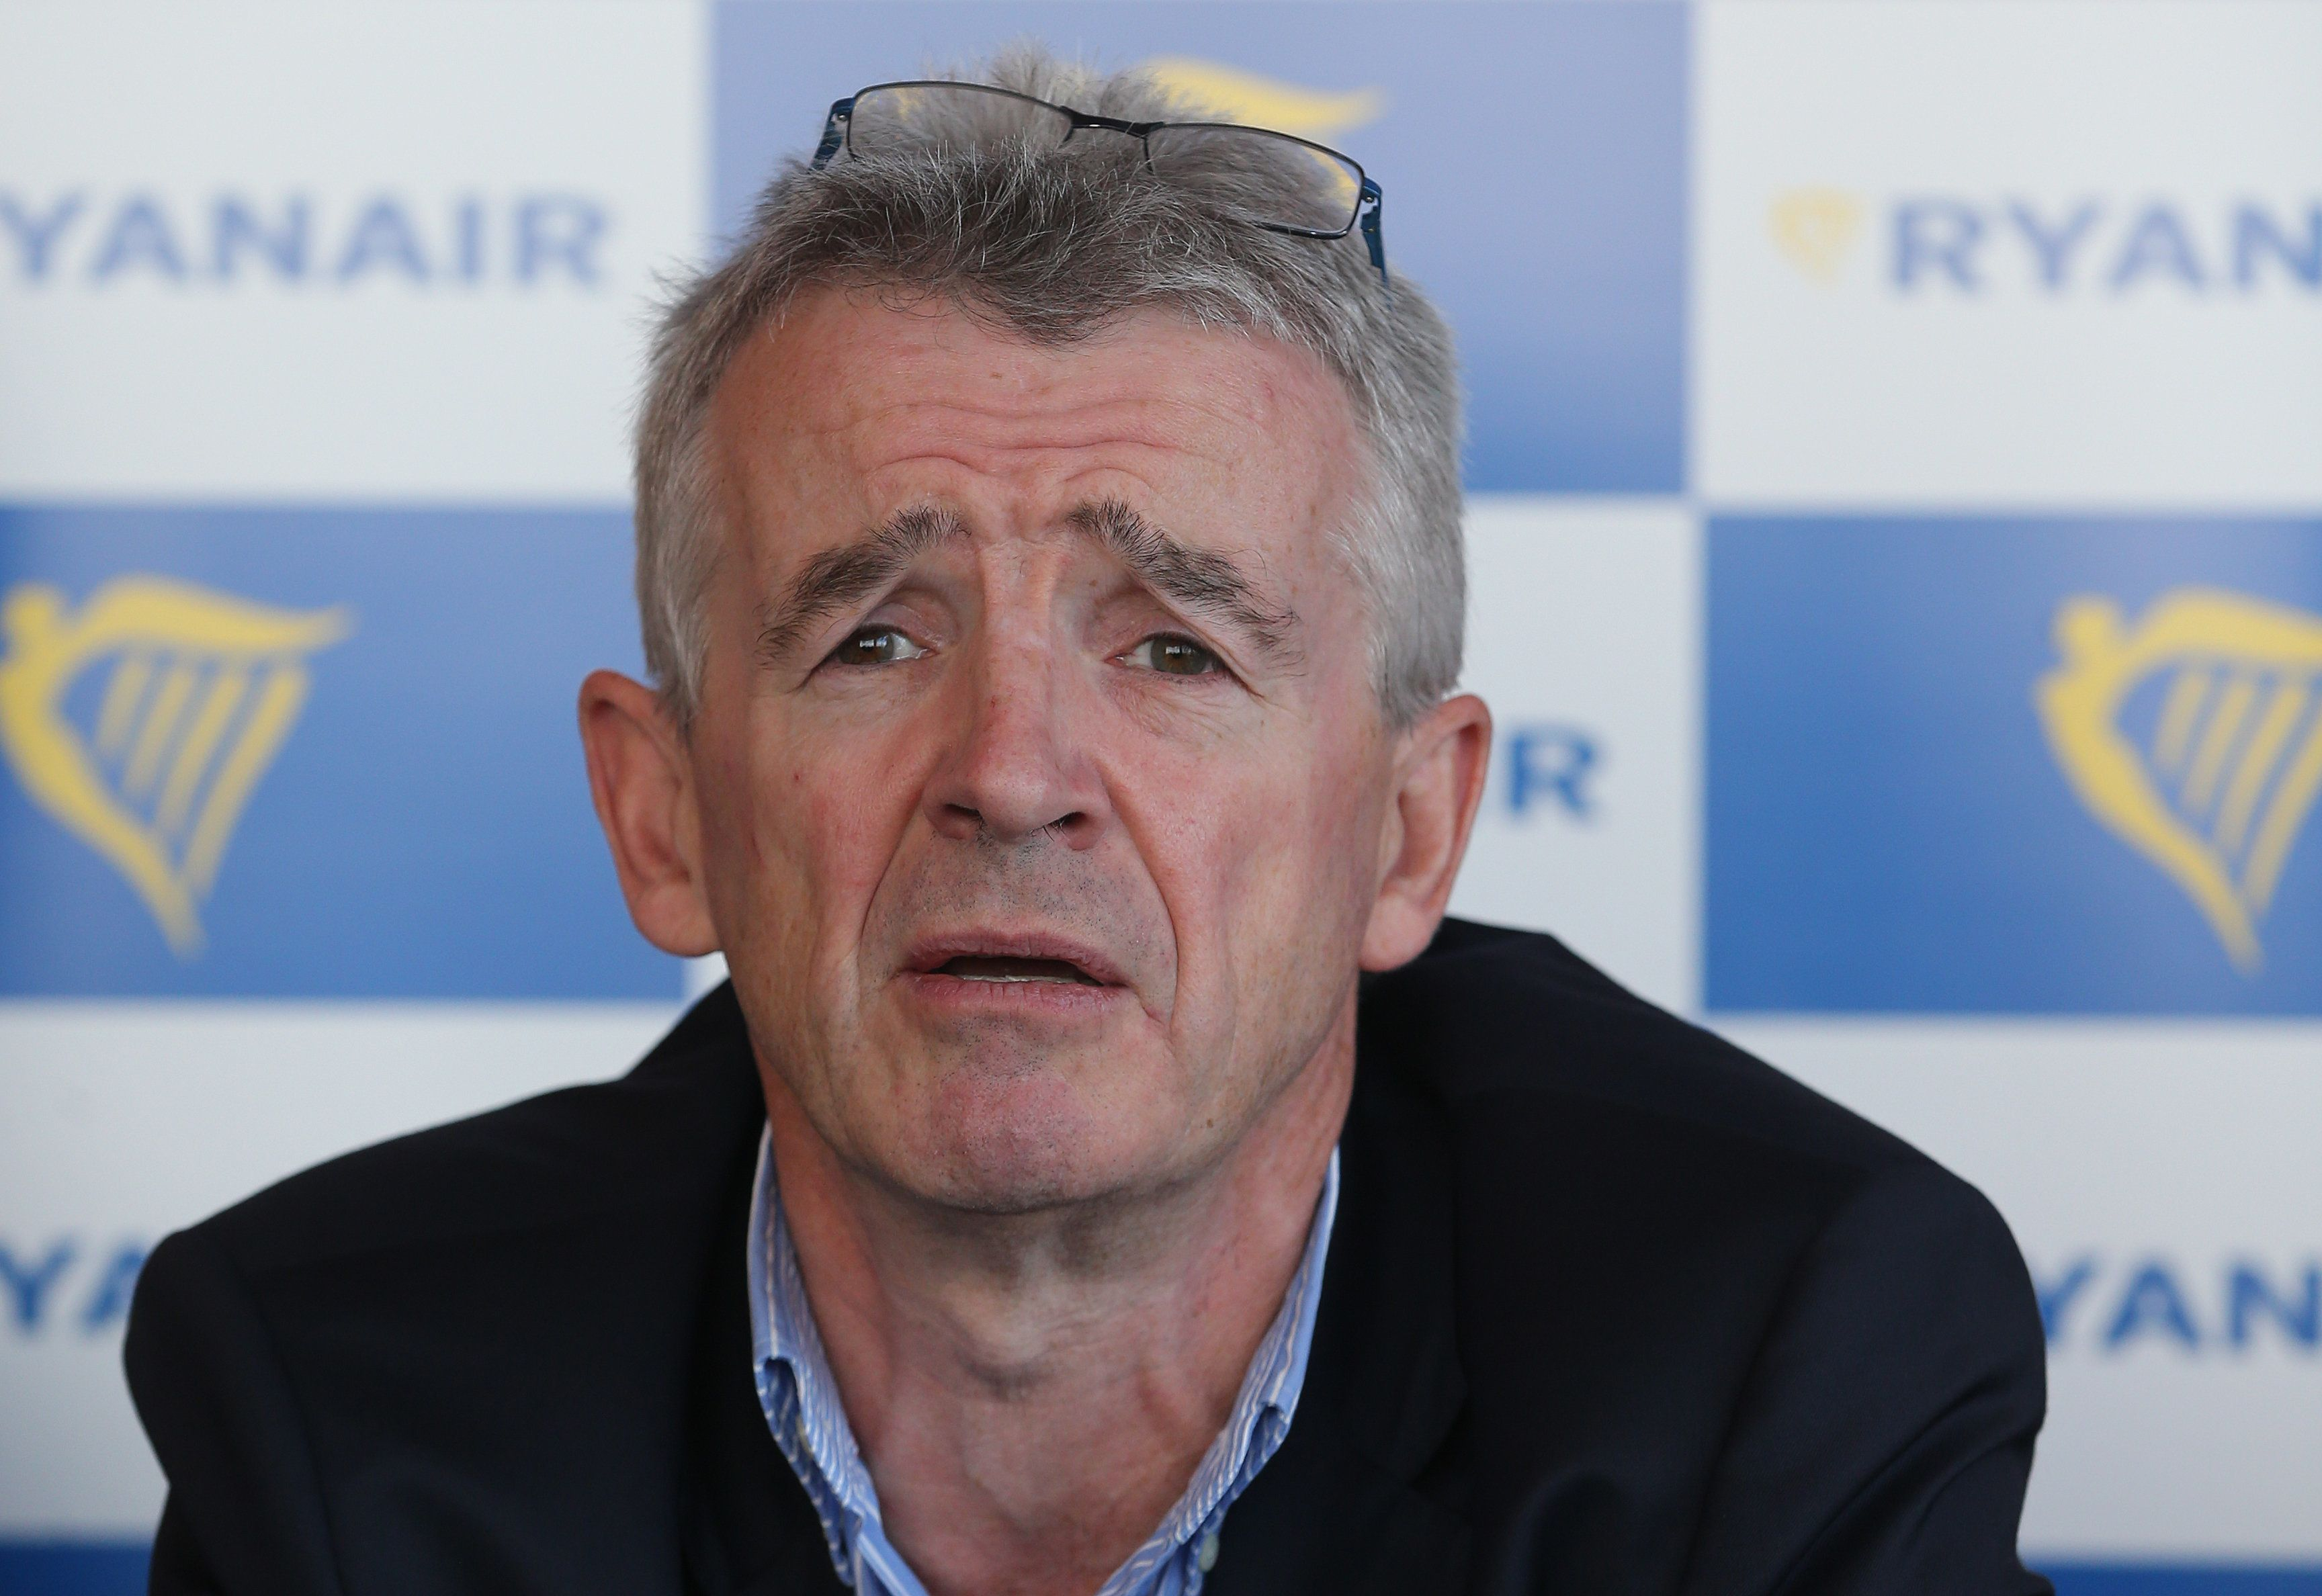 Ryanair Boss Michael O'Leary Waived €1m Bonus Over Cancelled Flights Last